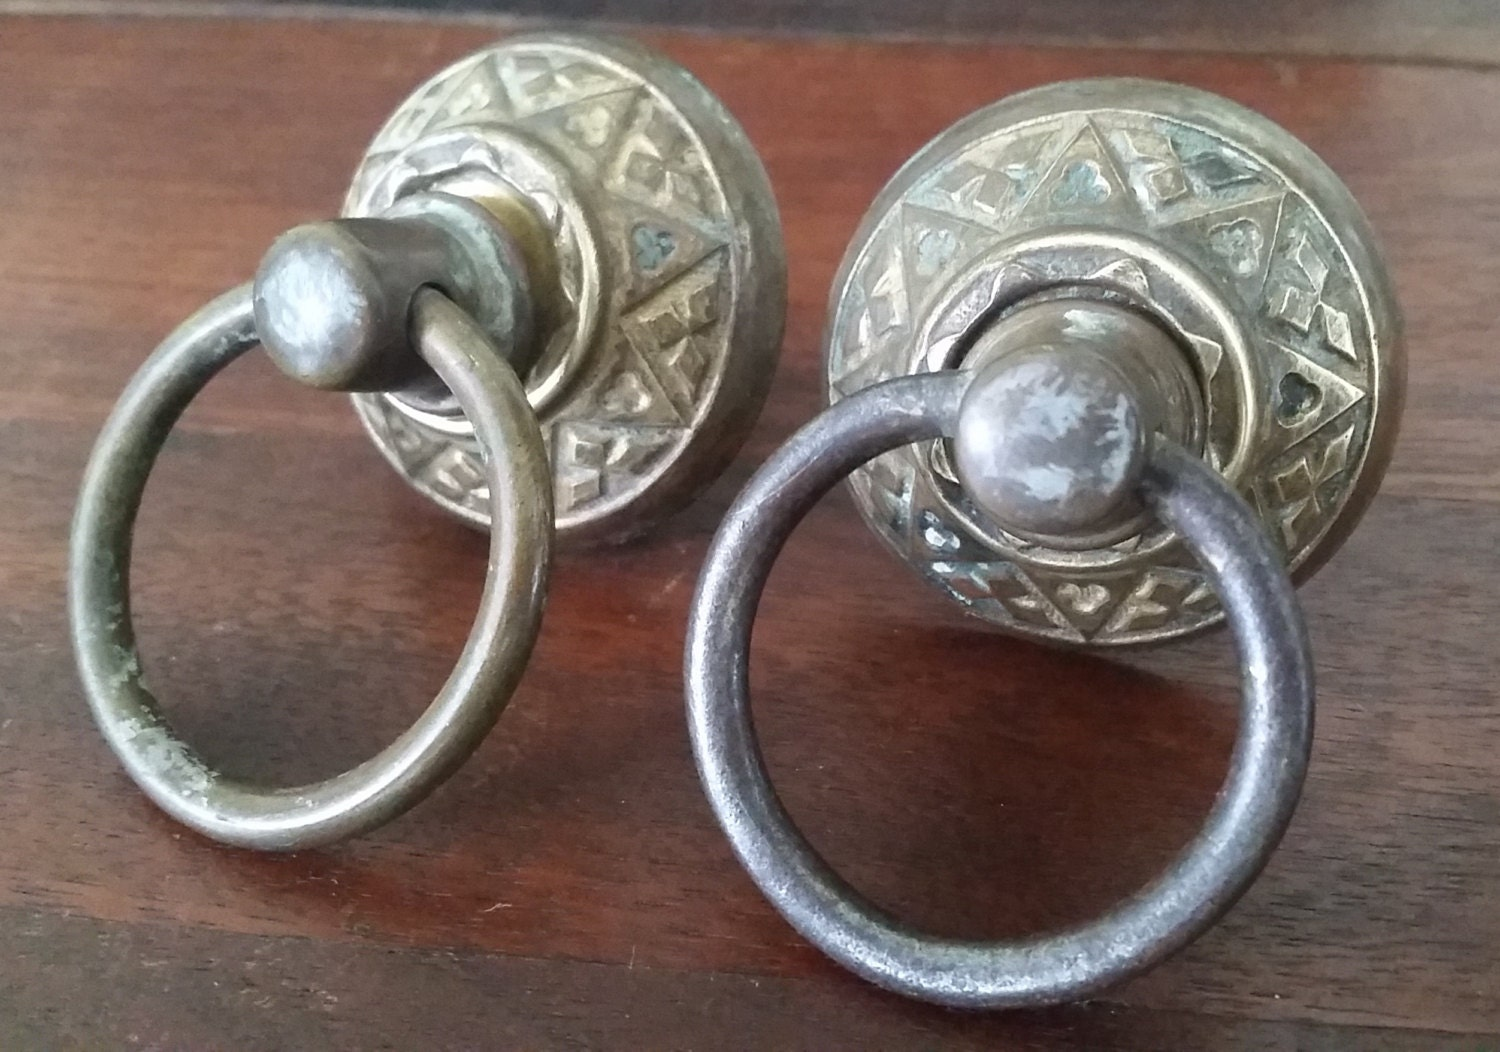 2 Vintage Drawer Pulls Hardware, Vintage, Metal. Pedestal Computer Desk. Dts Help Desk Number. Nursery End Table. Oval Lamp Shades For Table Lamps. Glass White Desk. Table Top Ice Makers. Round Dining Table White. Round Metal Patio Table